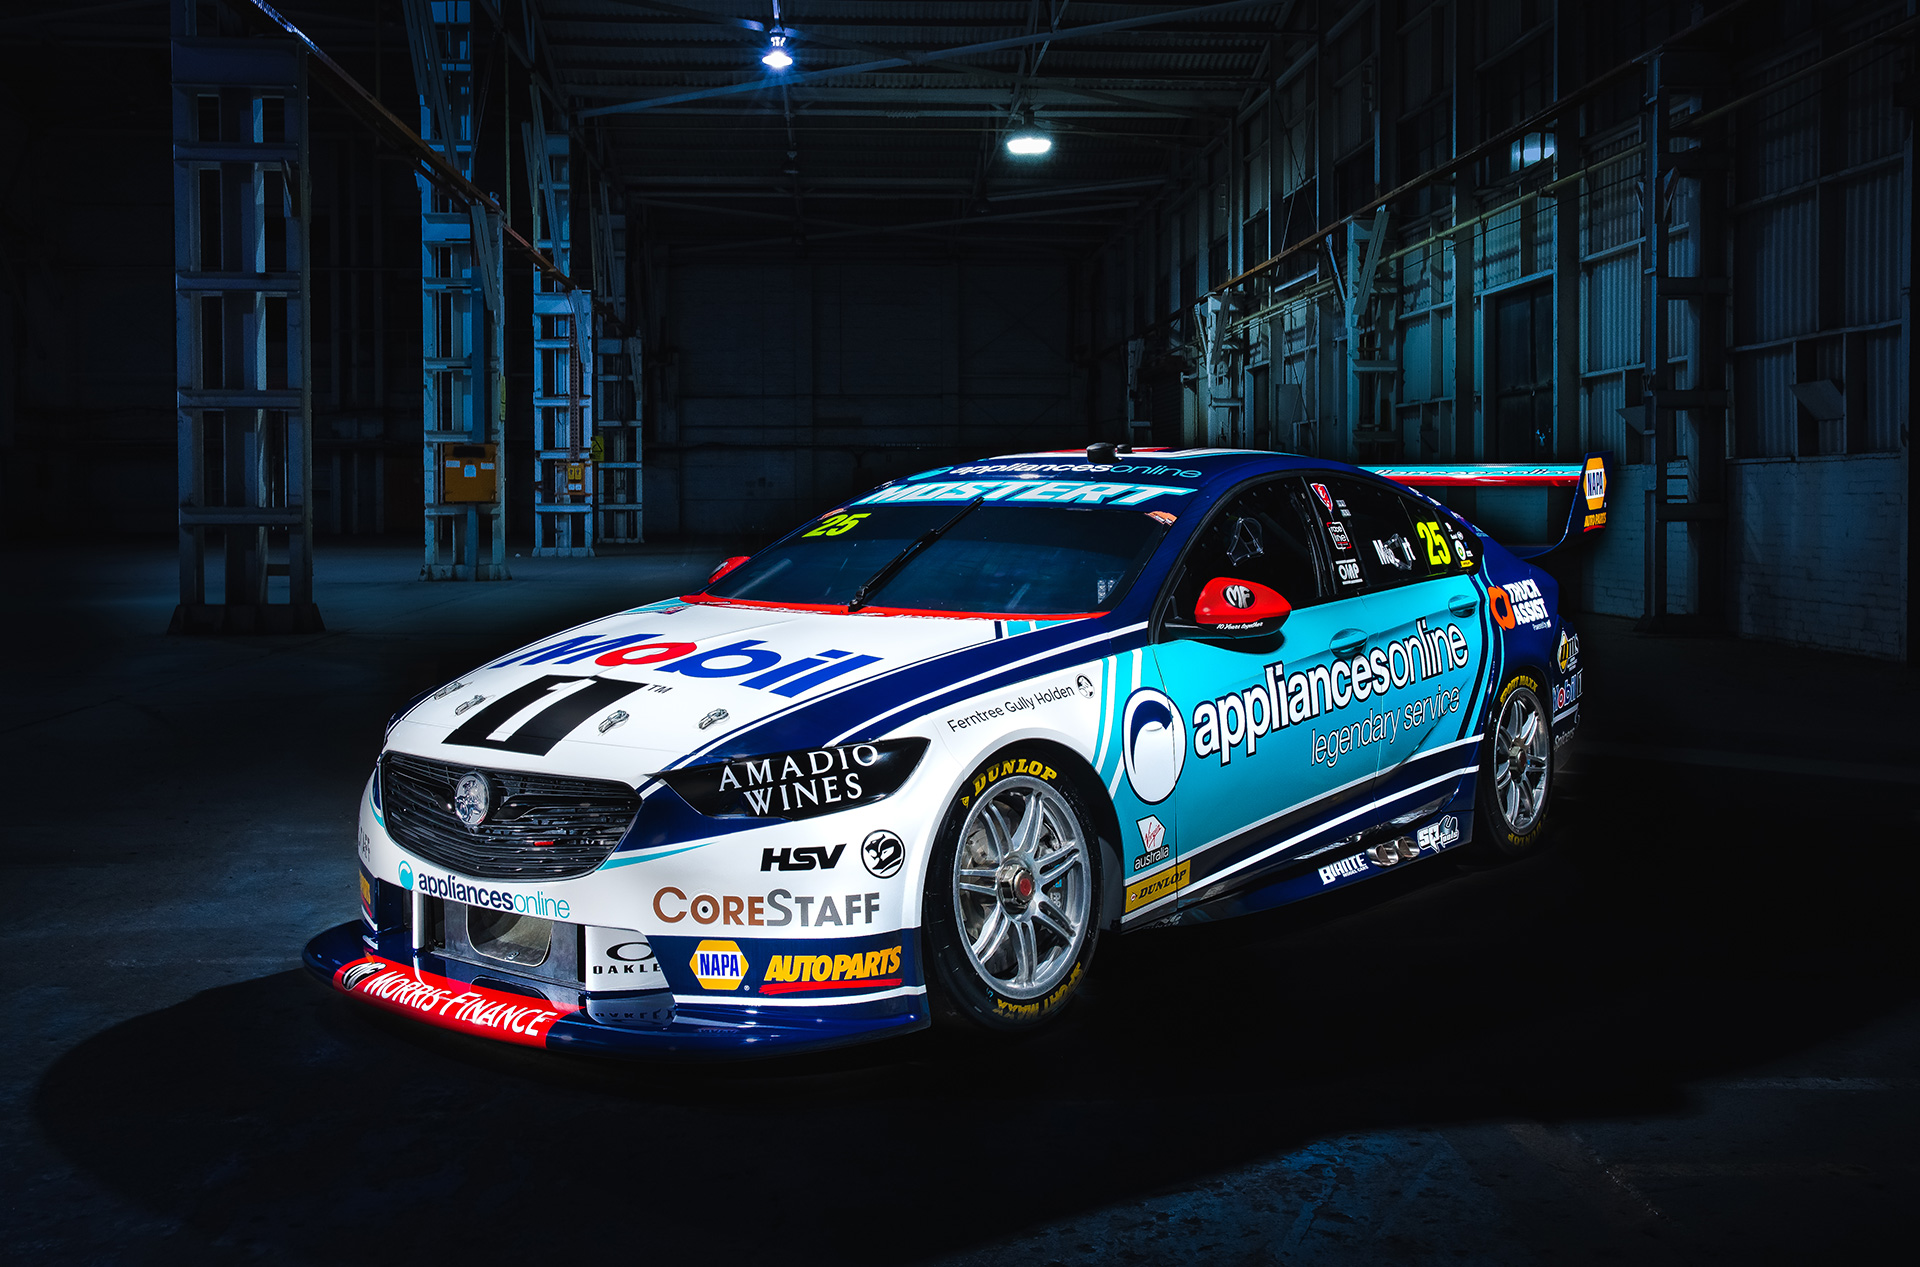 Chaz Mostert's No. 25 livery revealed.